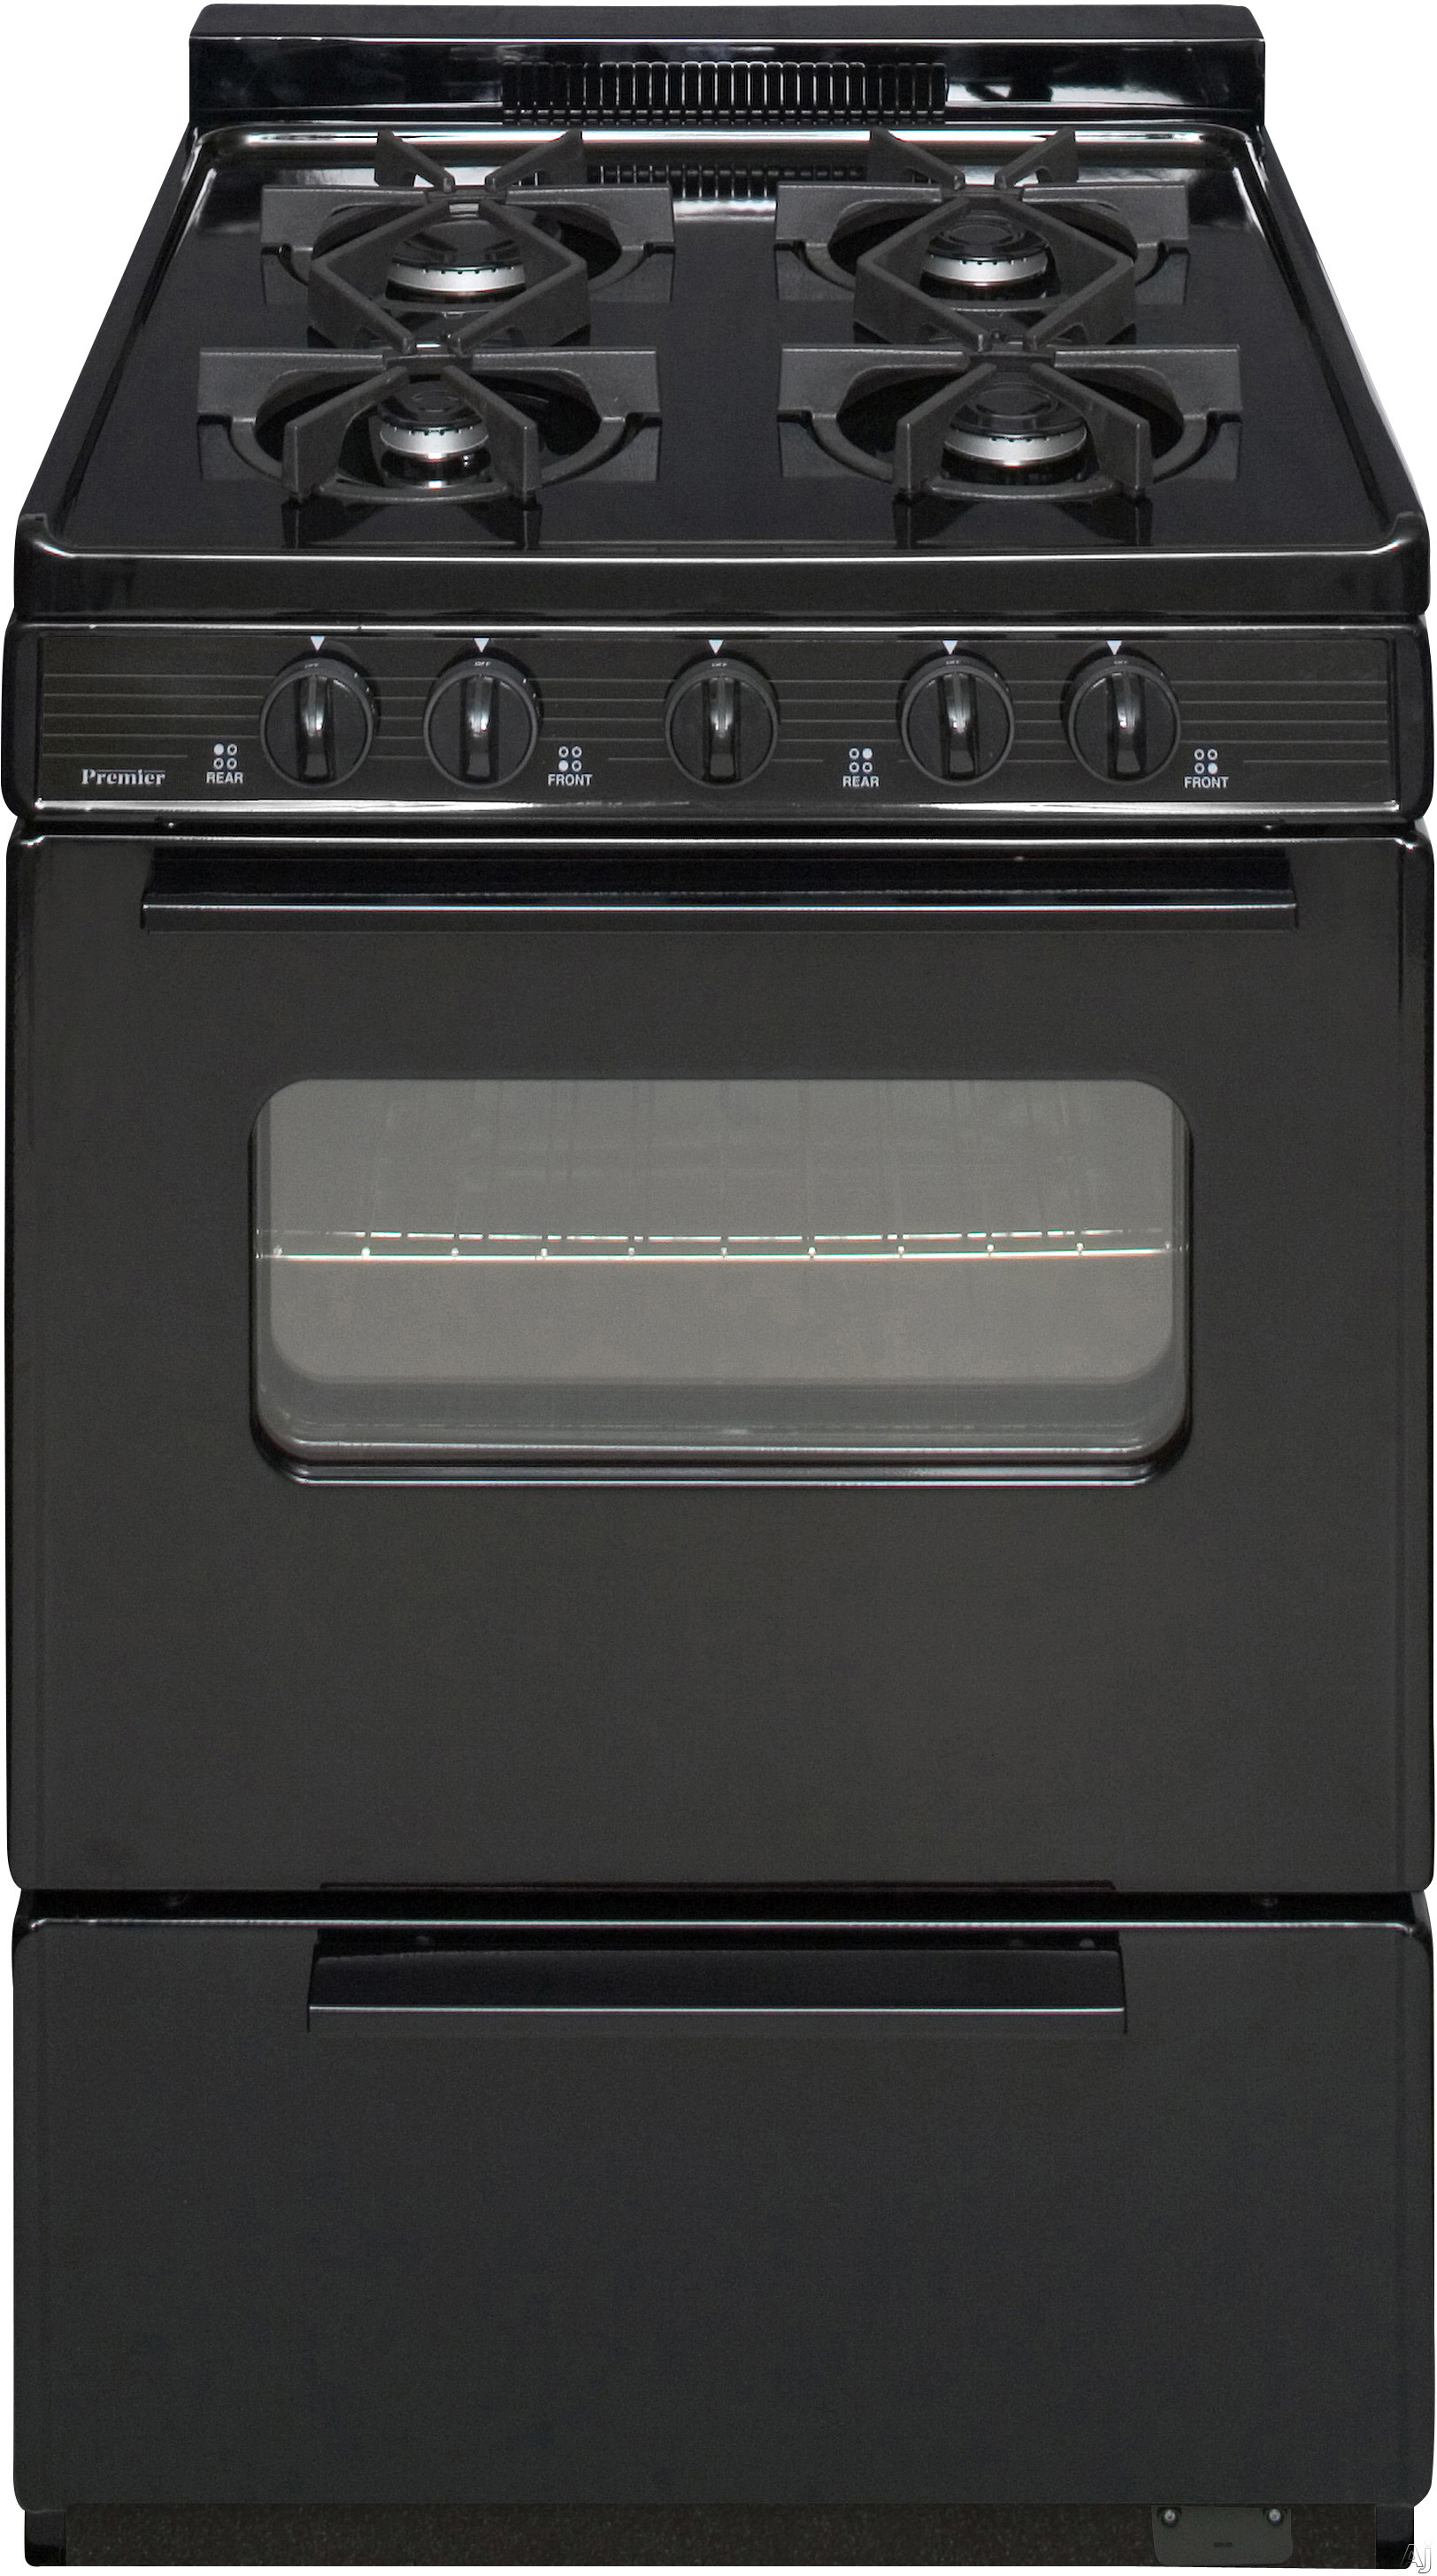 Premier bjk5x0bp 24 freestanding cordless gas range with for 17000 btu window air conditioner